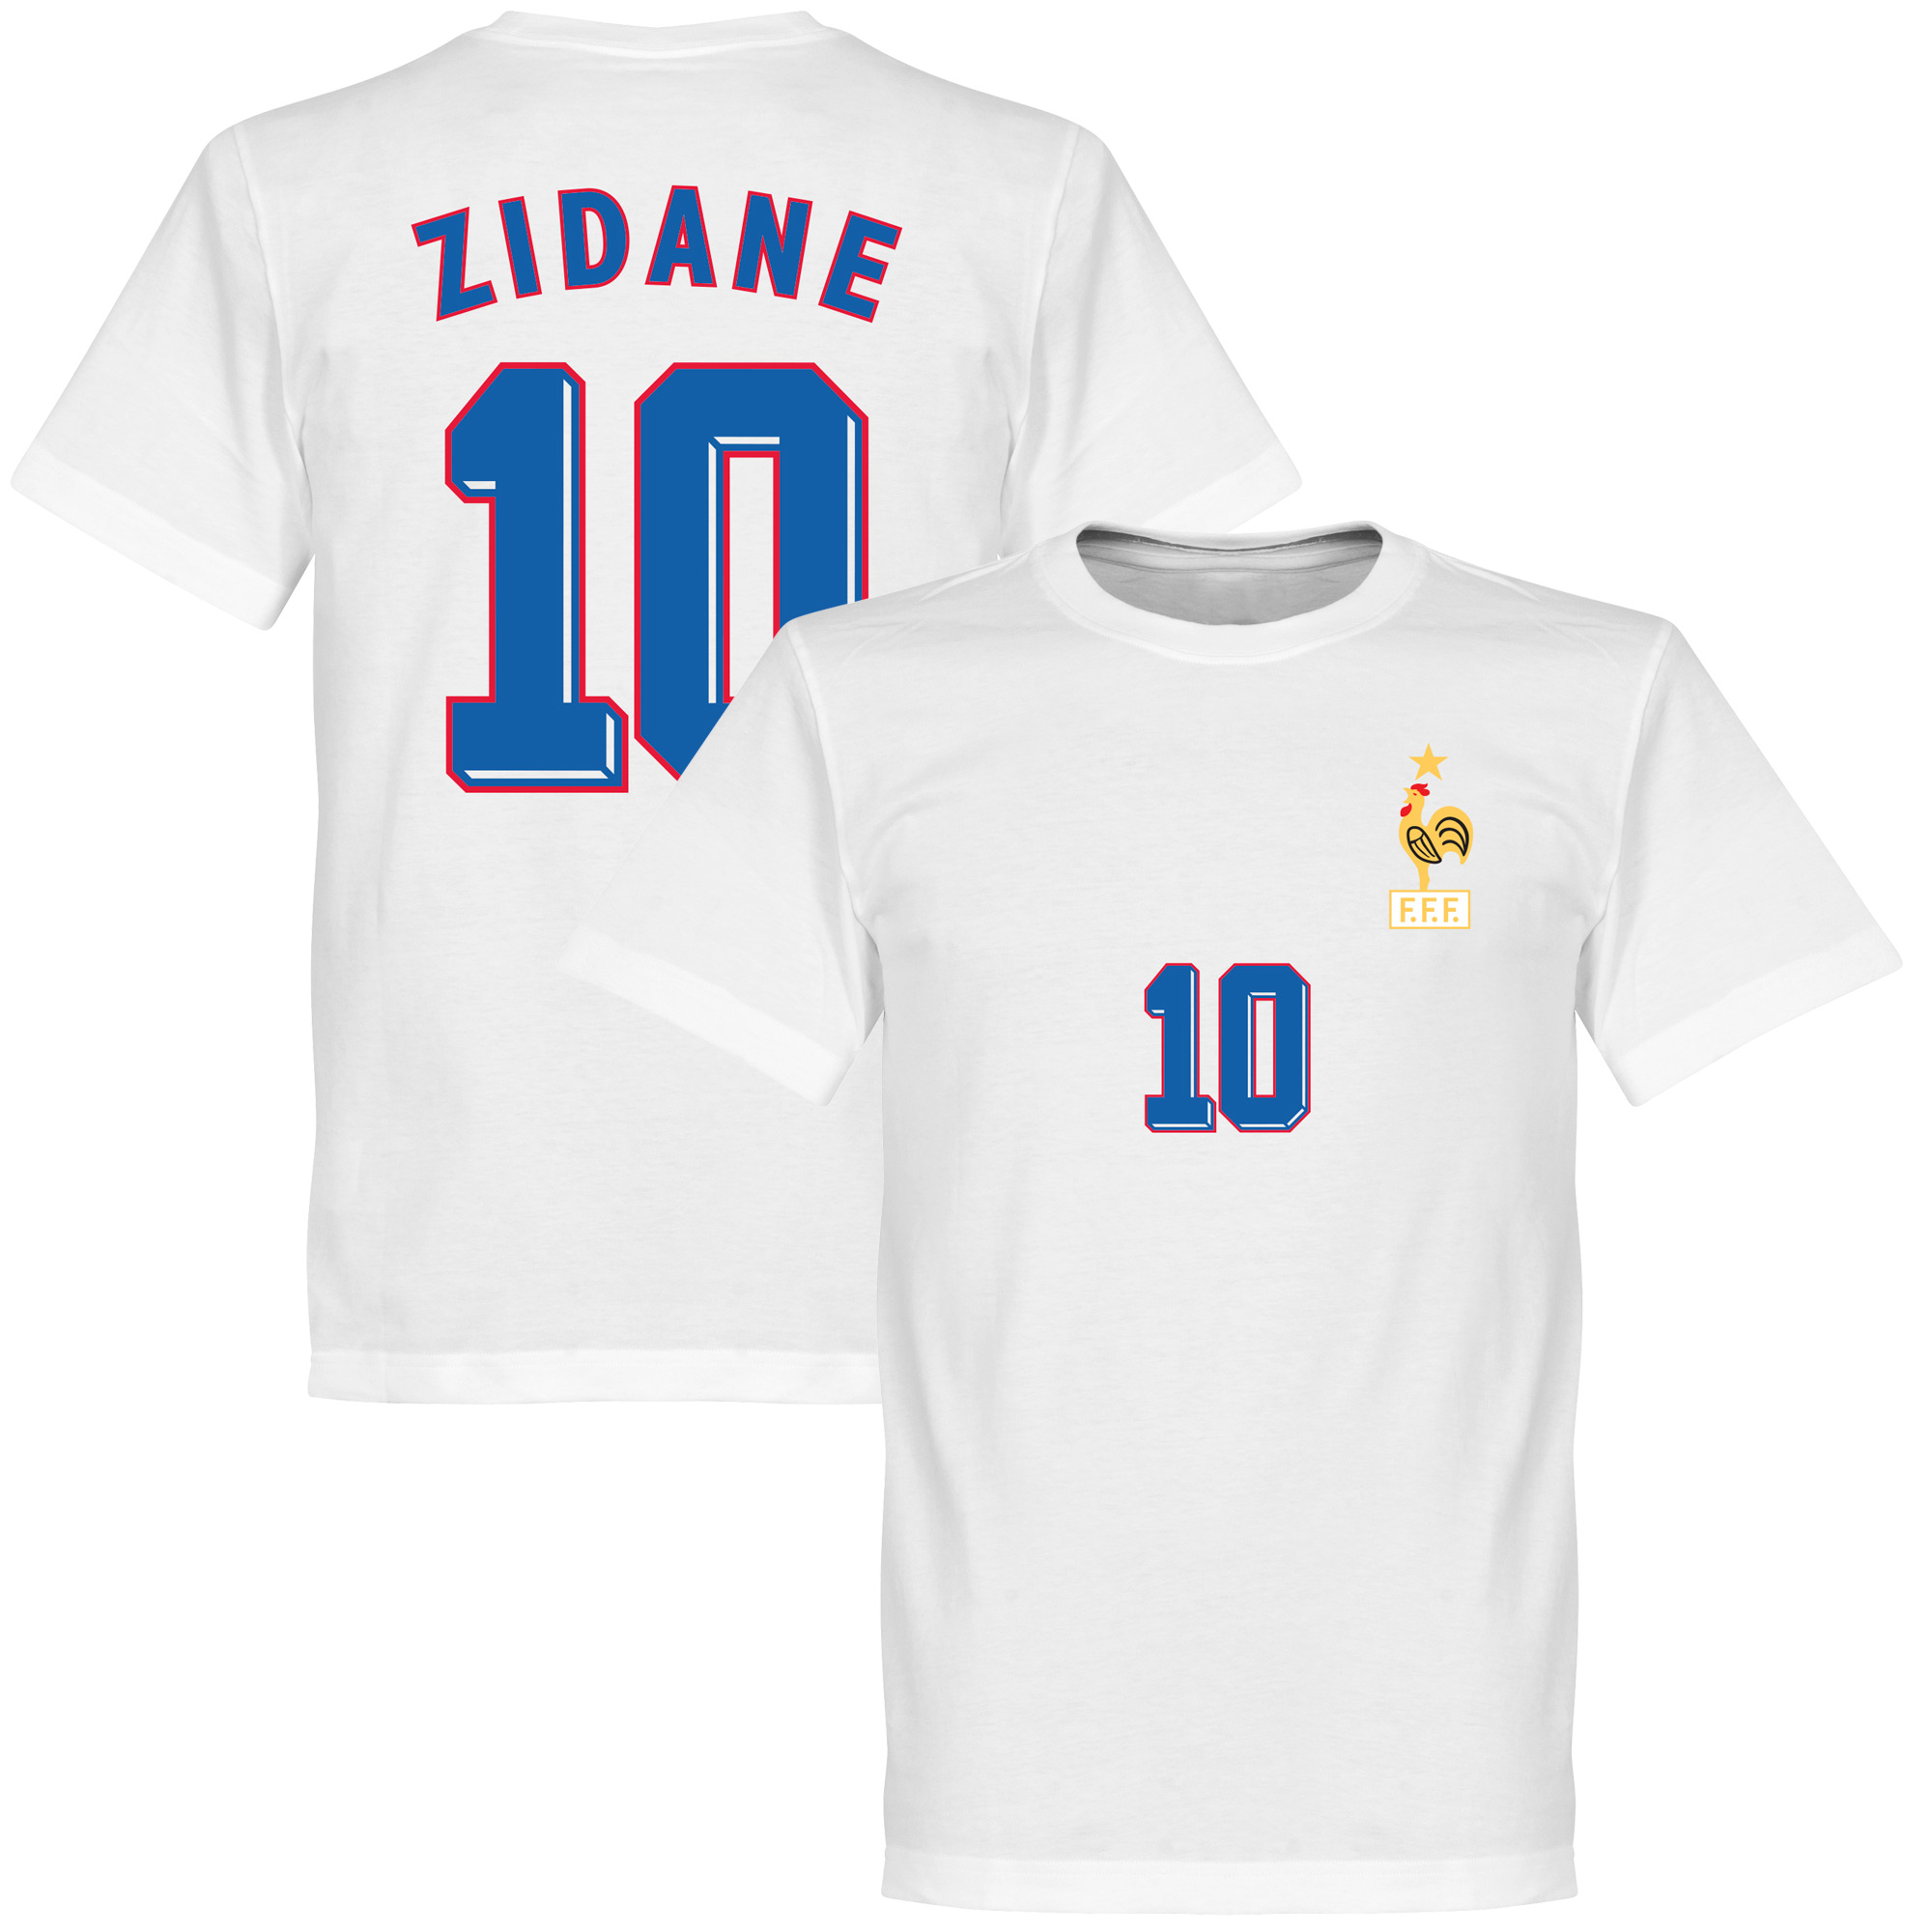 Zidane 1998 Away Tee - White - S